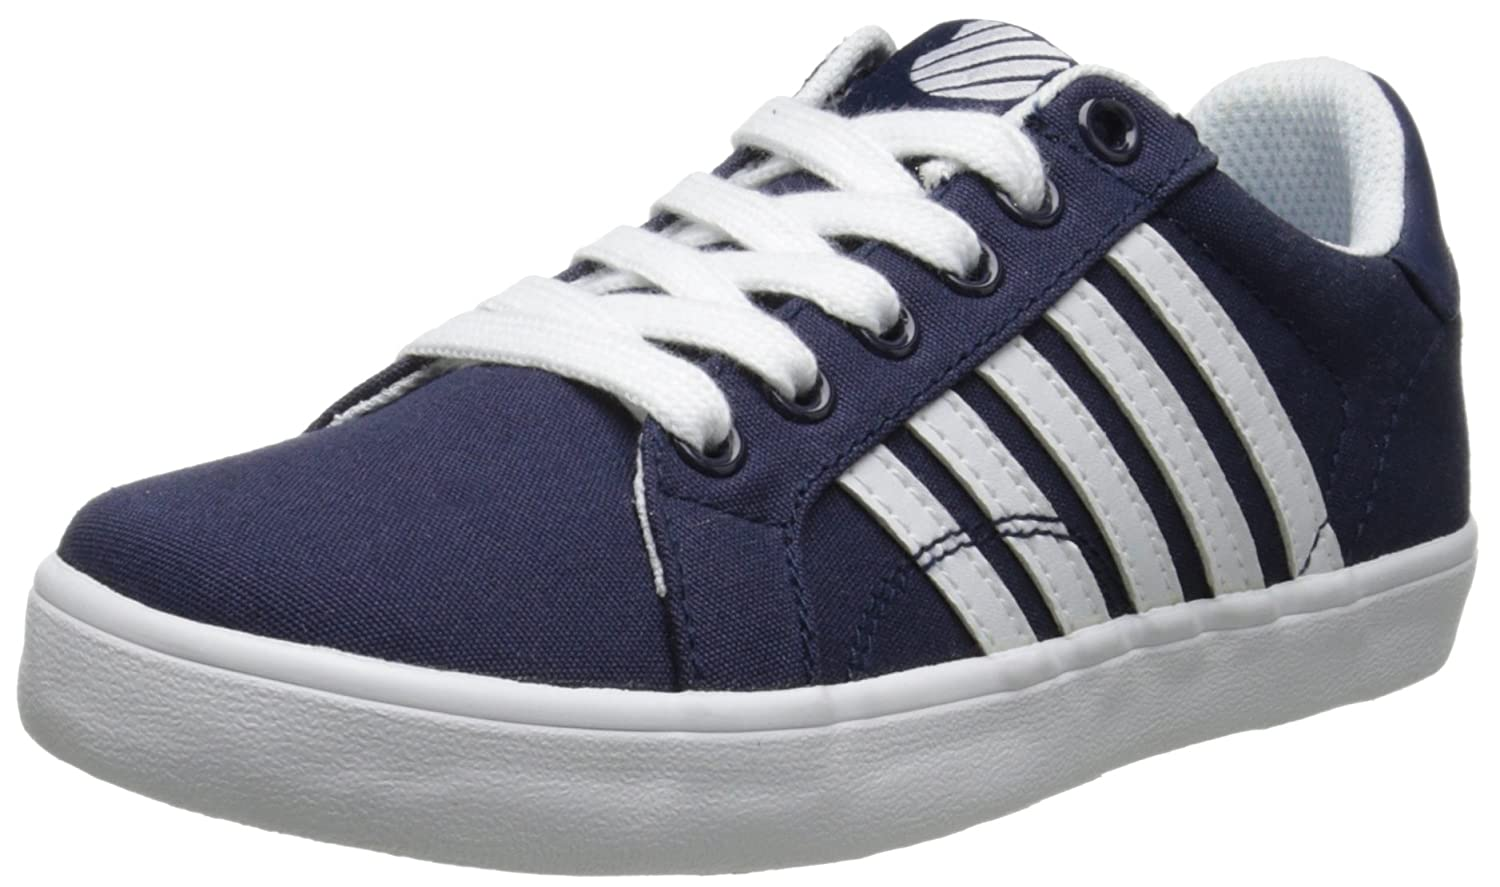 K-Swiss Belmont Textile PS Tennis Shoe (Little Kid) BELMONT TEXTILE PS - K